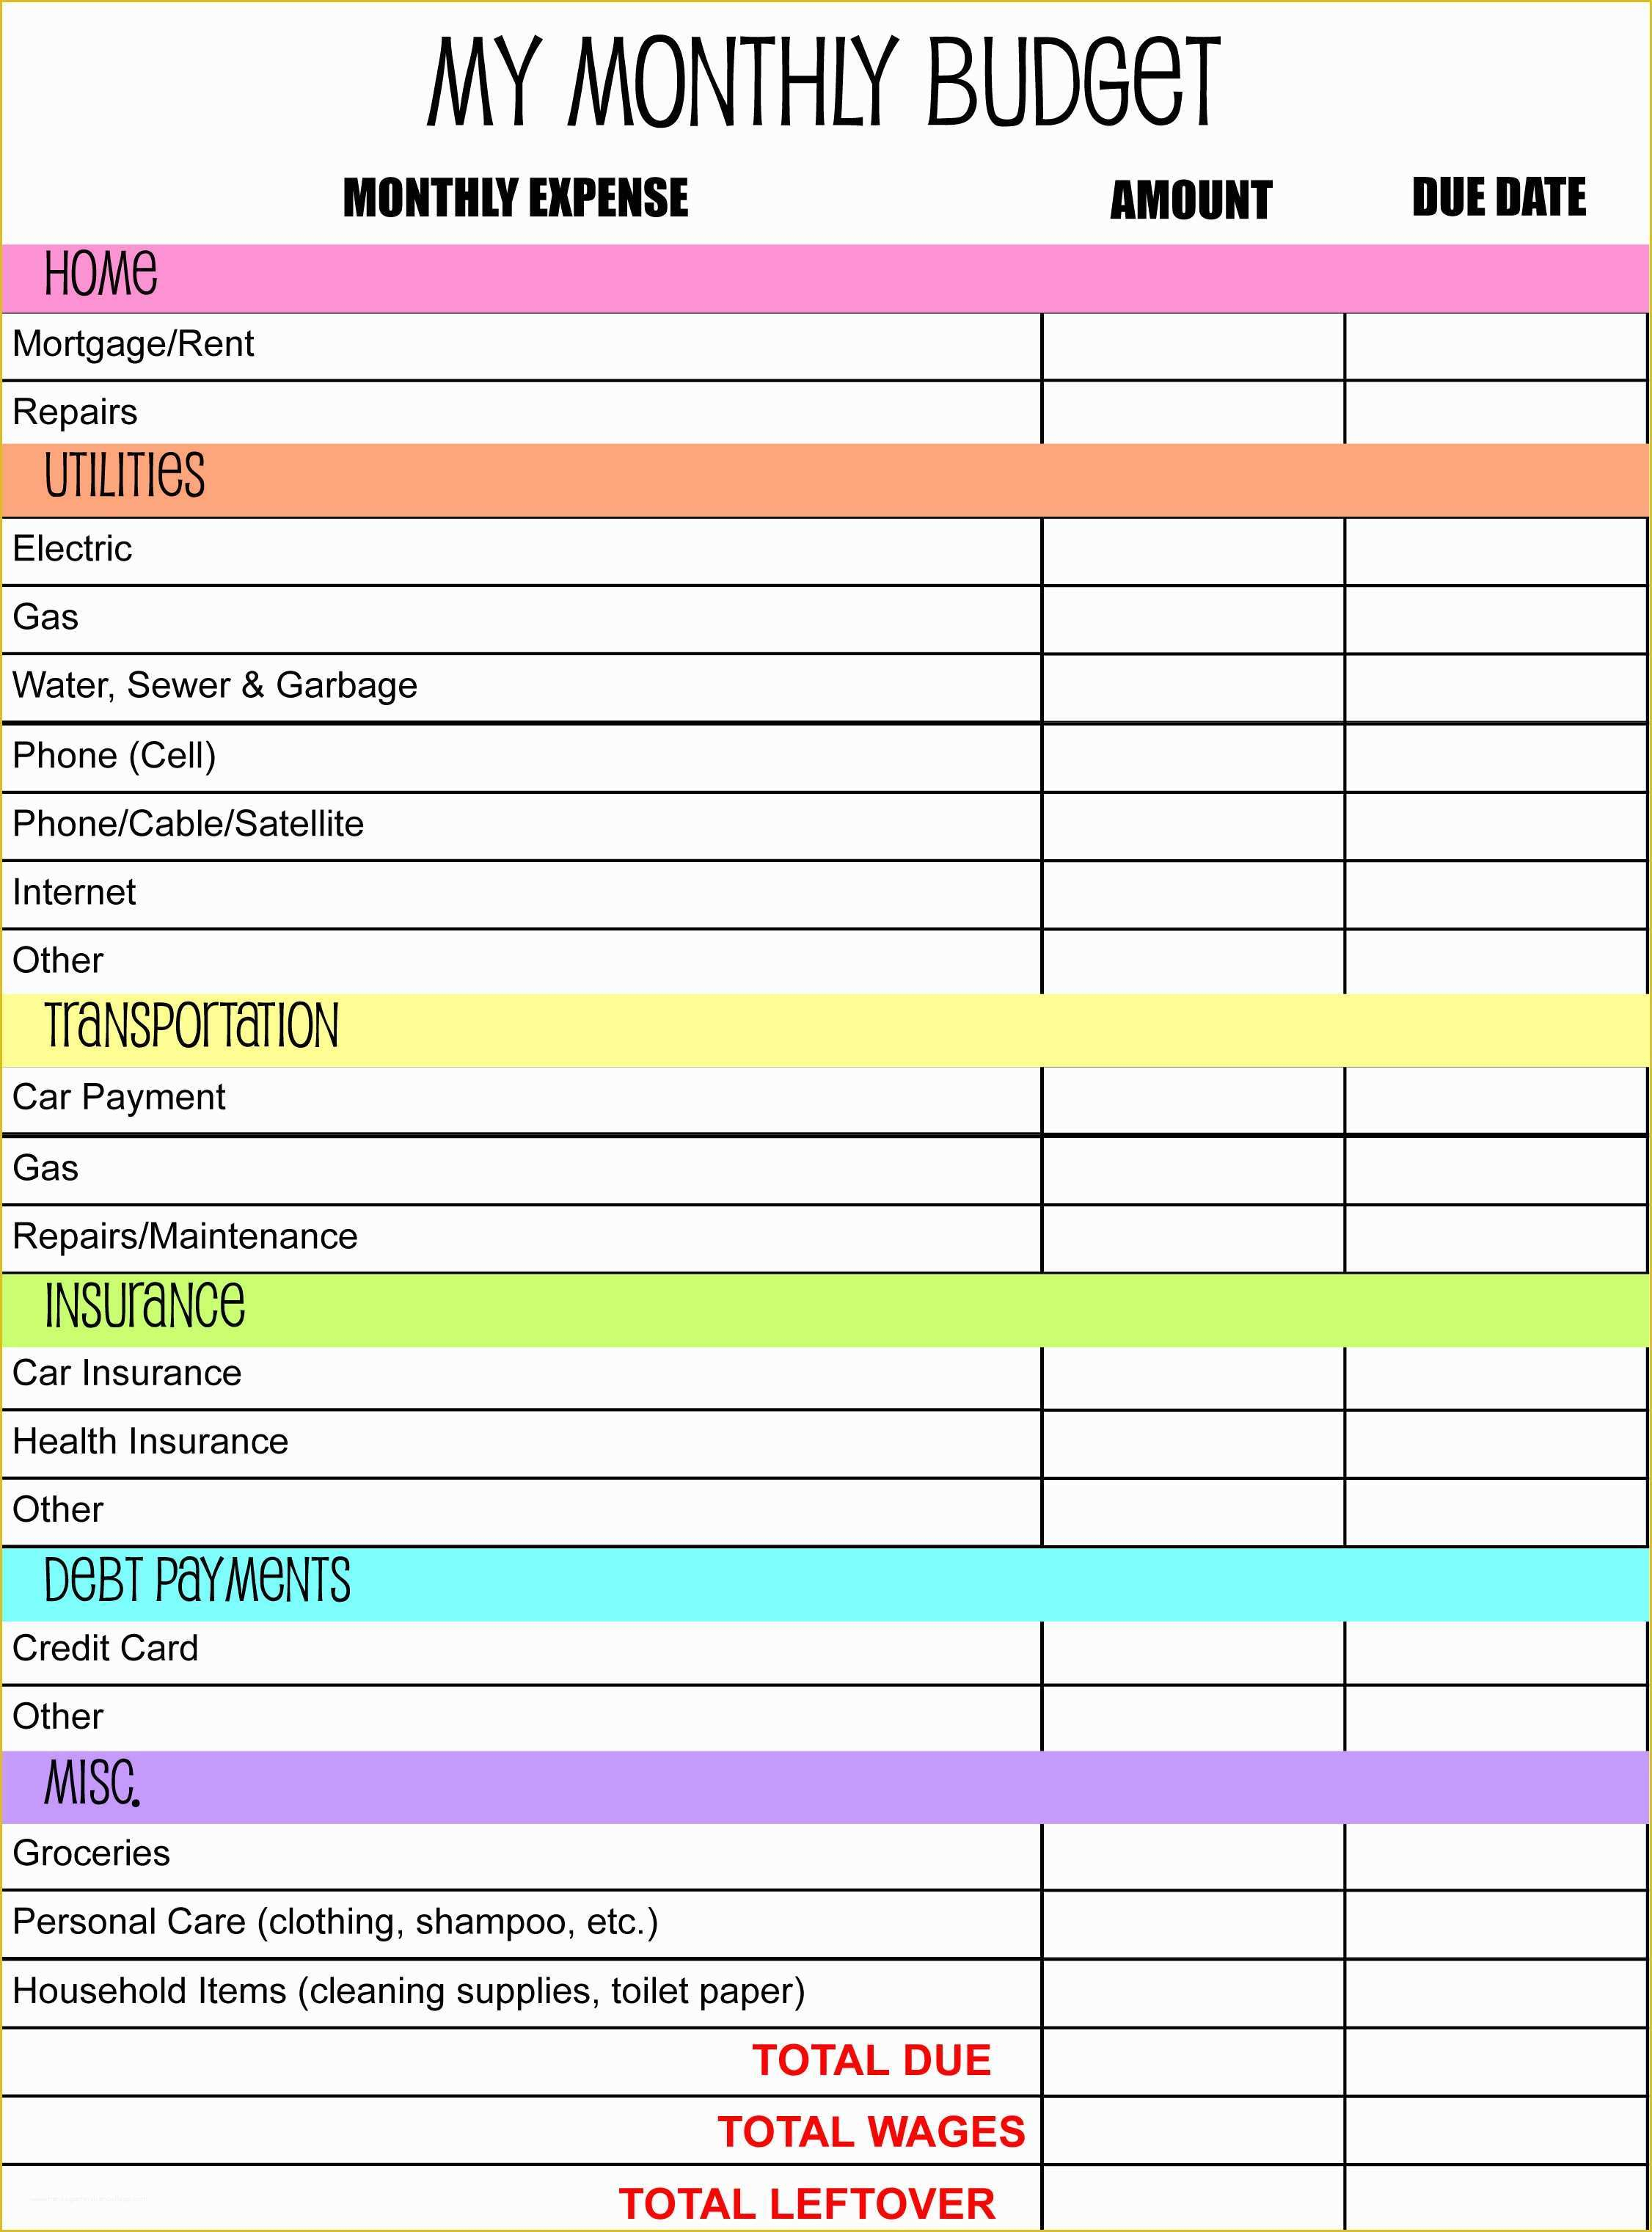 030 Free Downloadable Budget Template Of Bill Organizer in Printable Bill Organizer